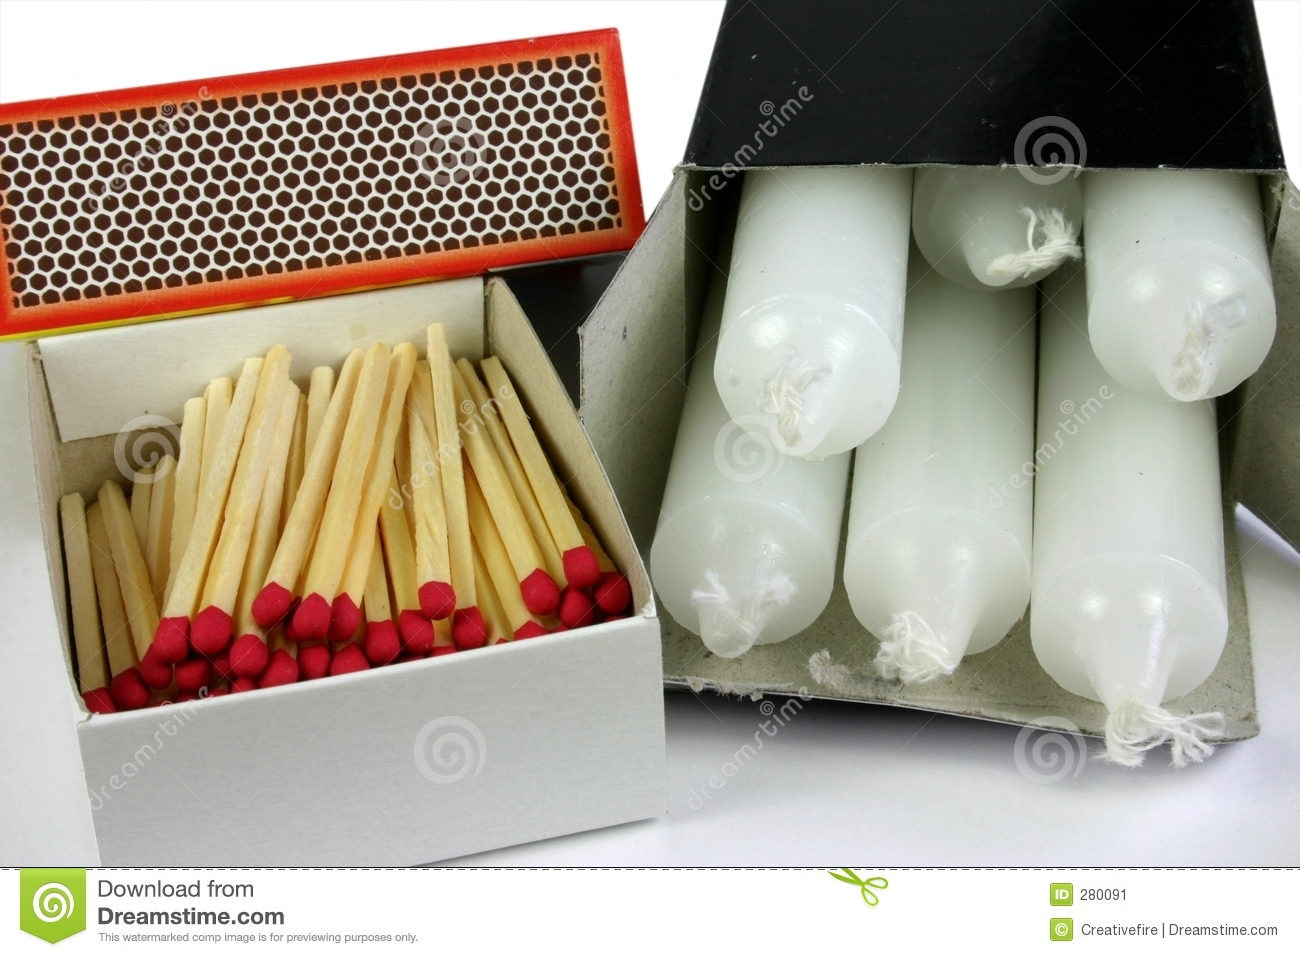 Matches and Candles